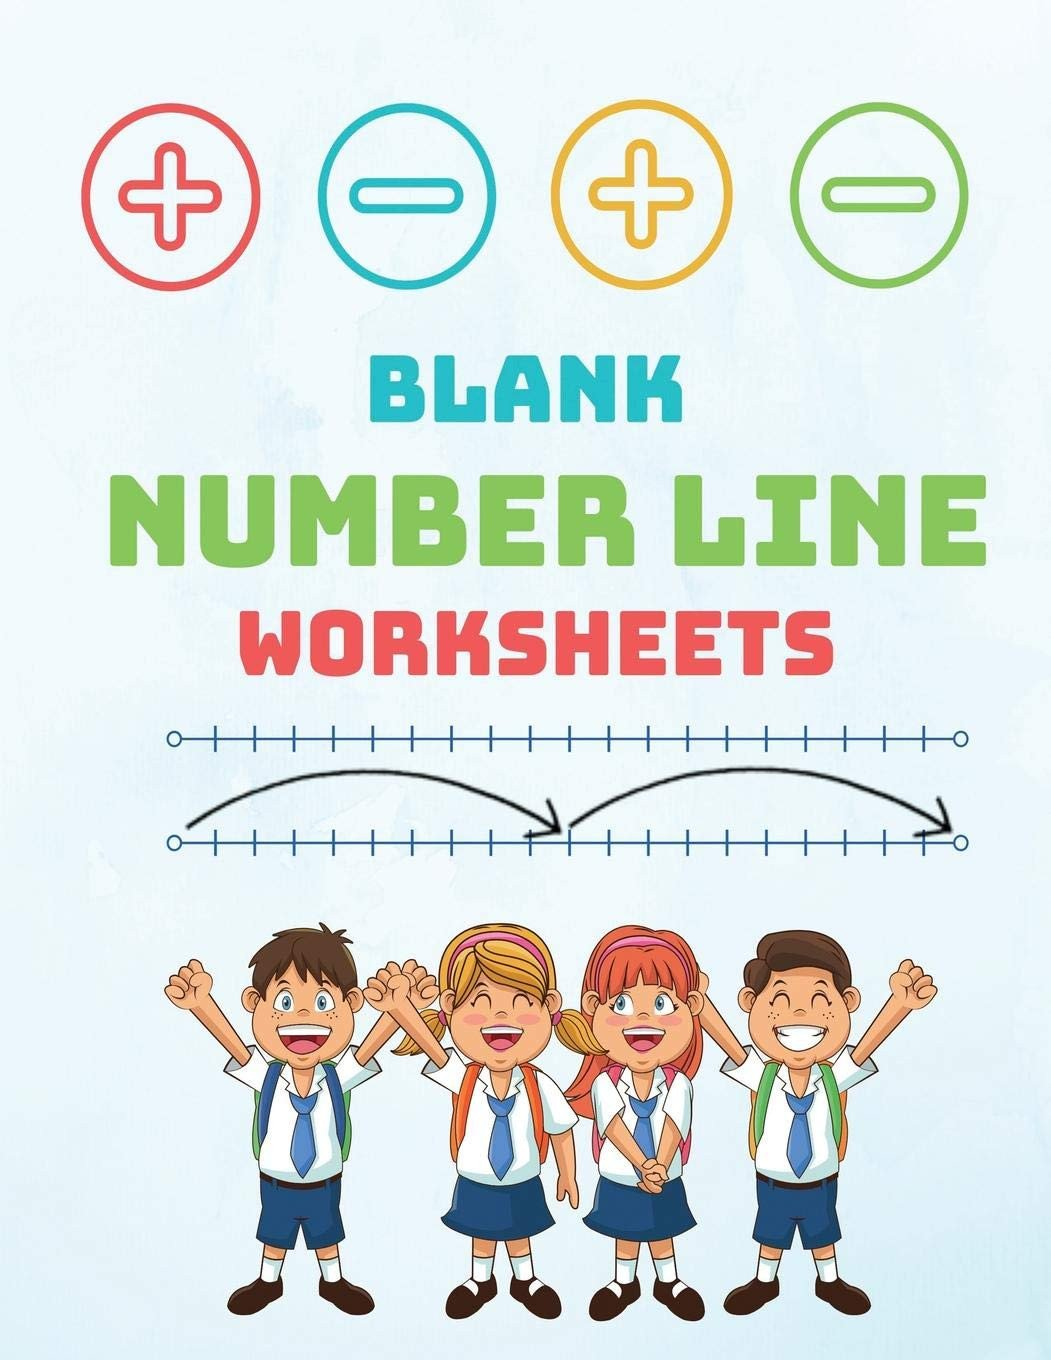 3rd Grade Number Line Worksheets Blank Number Line Worksheets Number Lines for Kids to